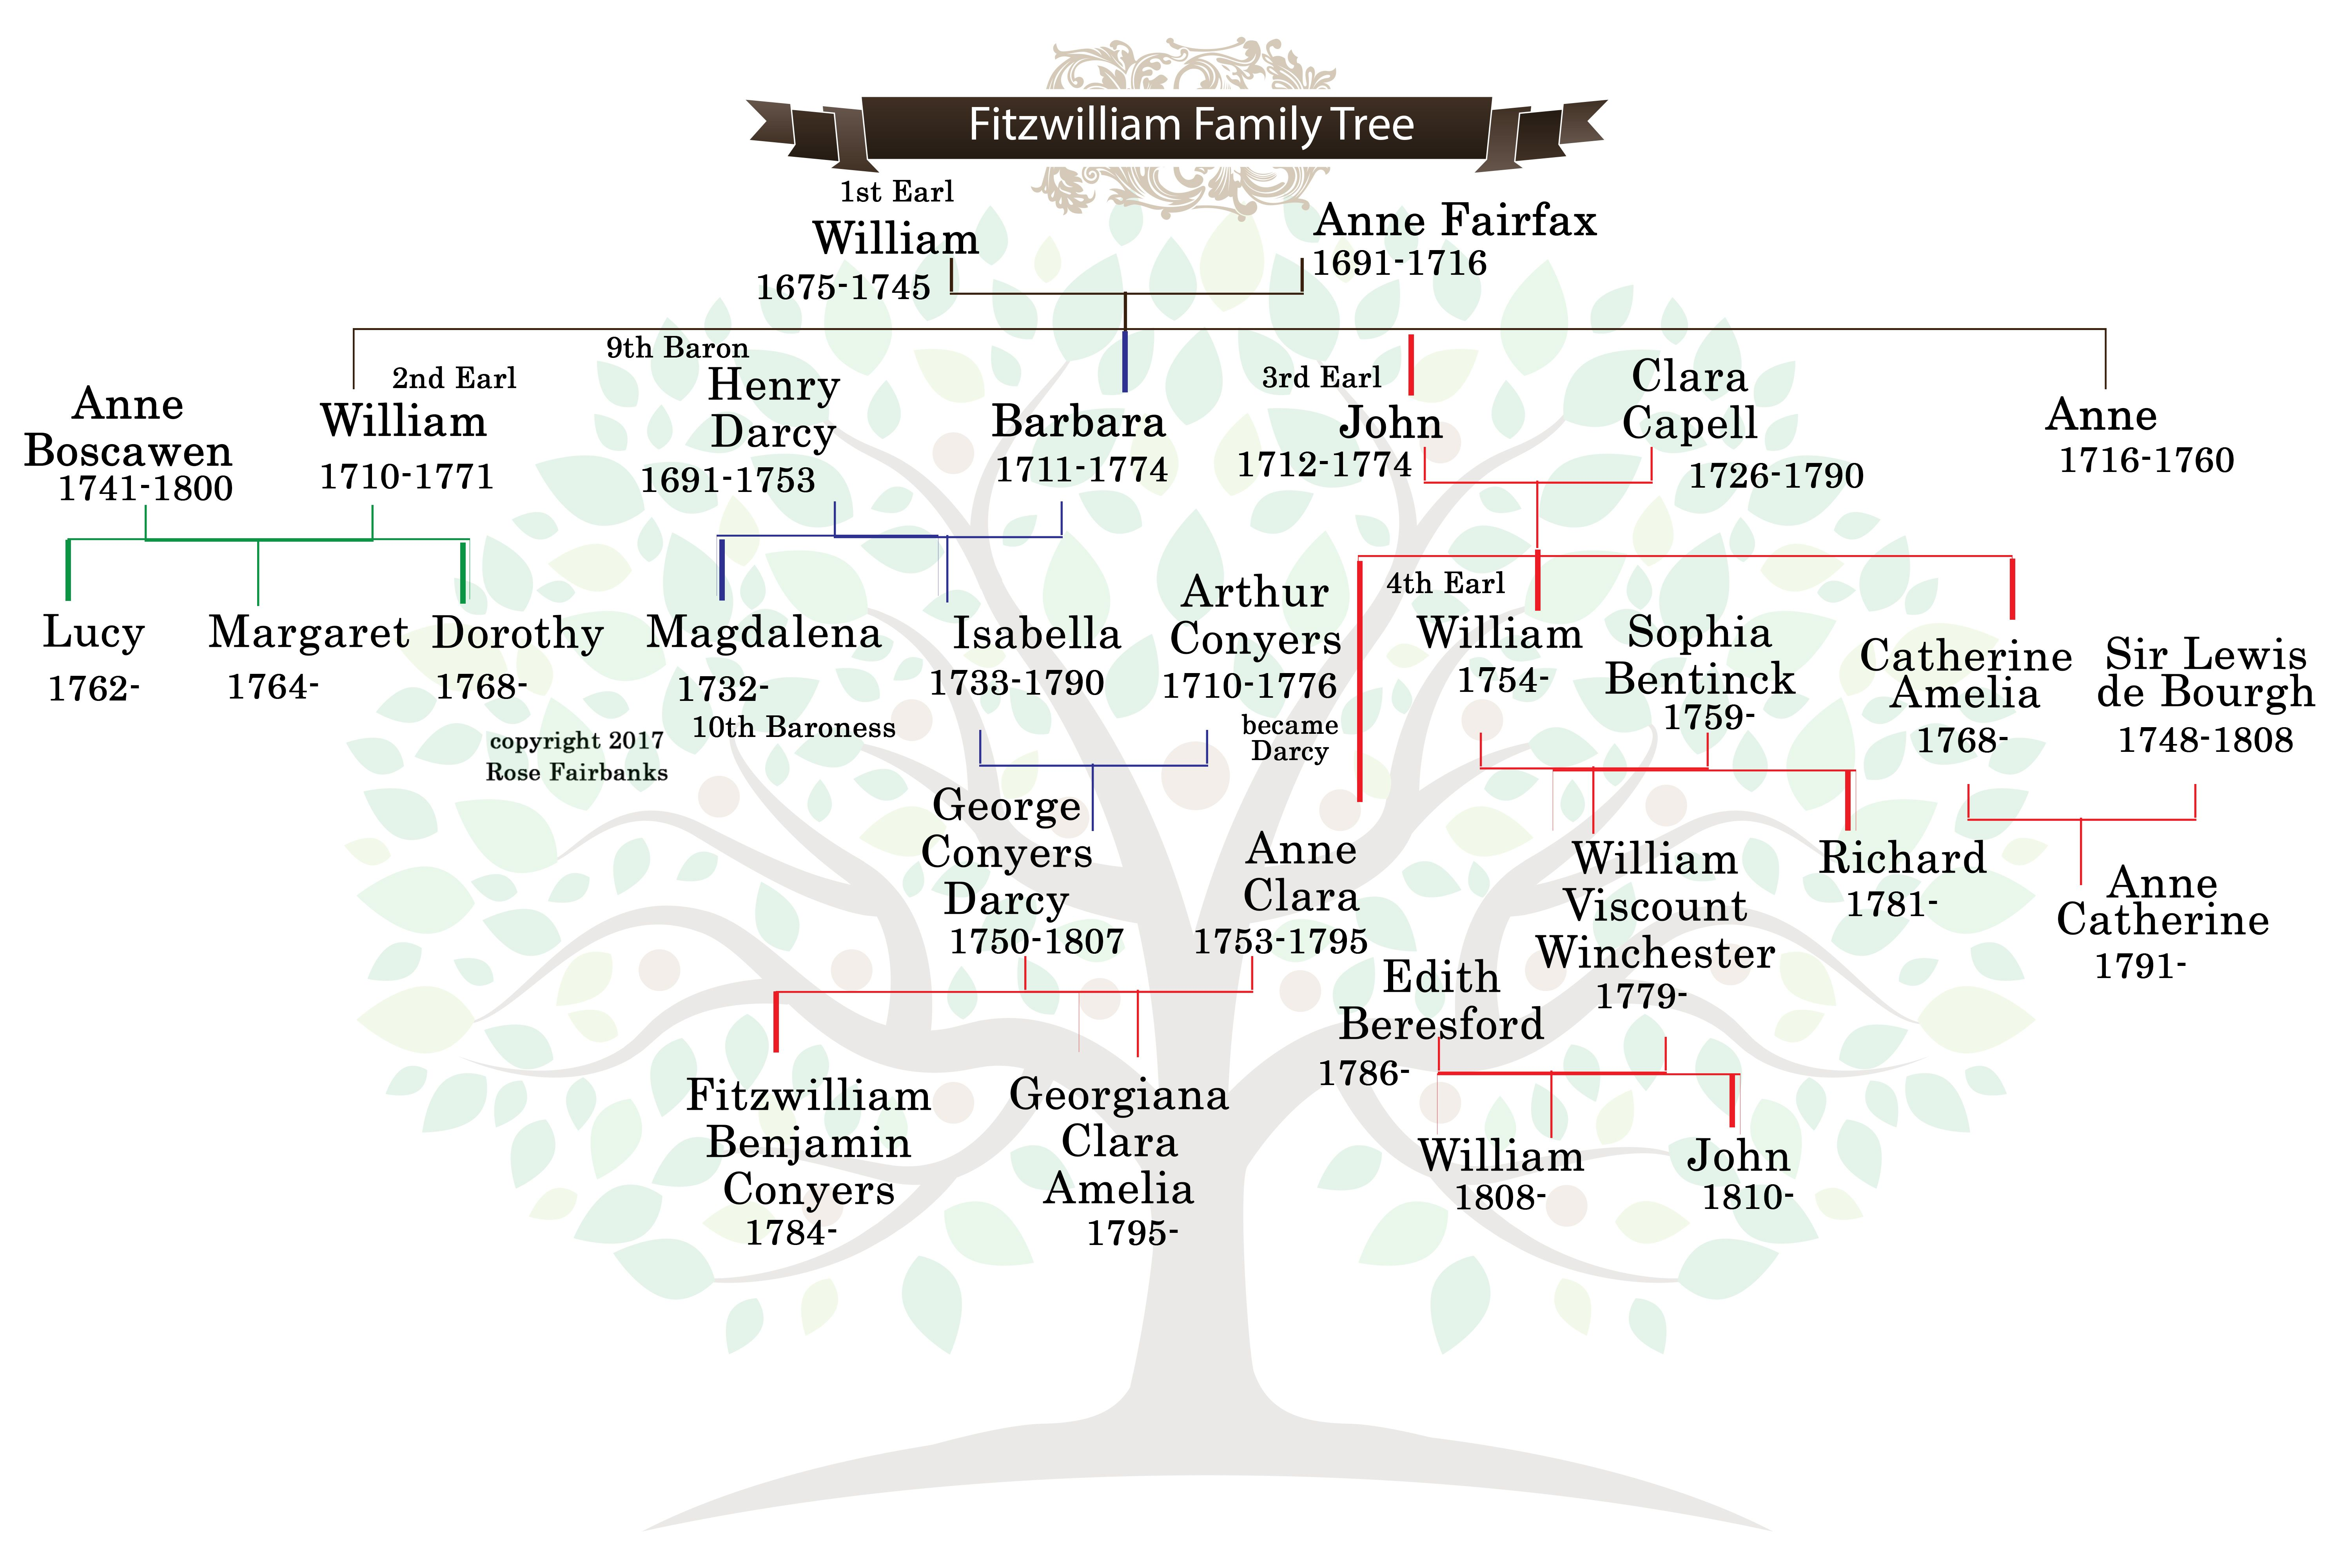 Fitzwilliam family tree for mr darcys bluestocking bride fitzwilliam family tree for mr darcys bluestocking bride copyright 2017 rose fairbanks ccuart Gallery